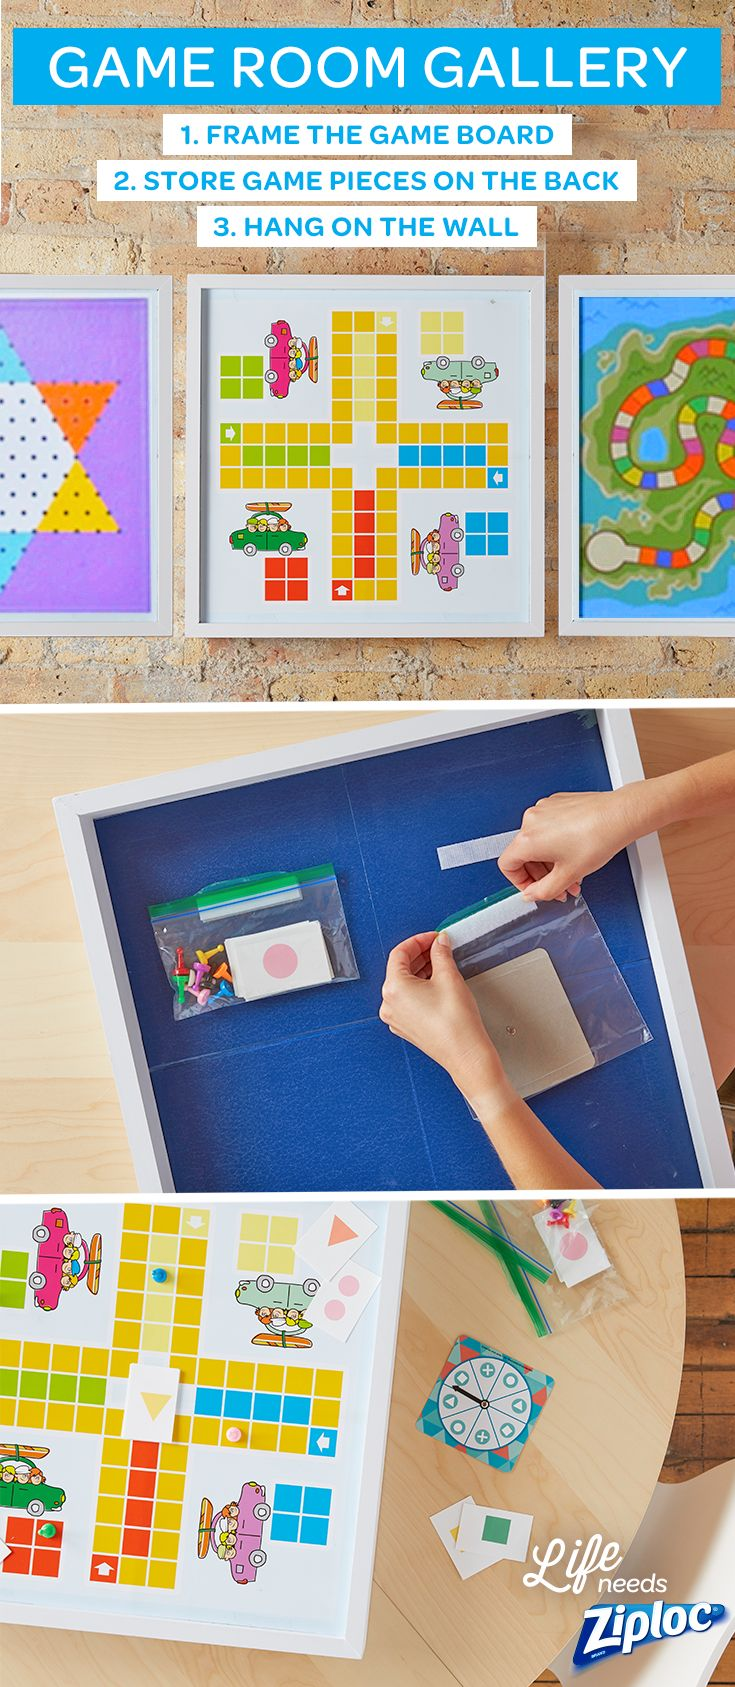 This simple trick makes it easy to keep track of all the pieces to your board games and add fun, graphic art to your family room, kid's room, toy room or game room! Just frame the board, store any tokens or cards in a Ziploc® sandwich bag, and attach the bags to the back of the frame. The game can then be hung on the wall and double as decorative artwork! This smart storage solution is also great for small spaces and can help you declutter messy cabinets and get rid of broken game boxes.